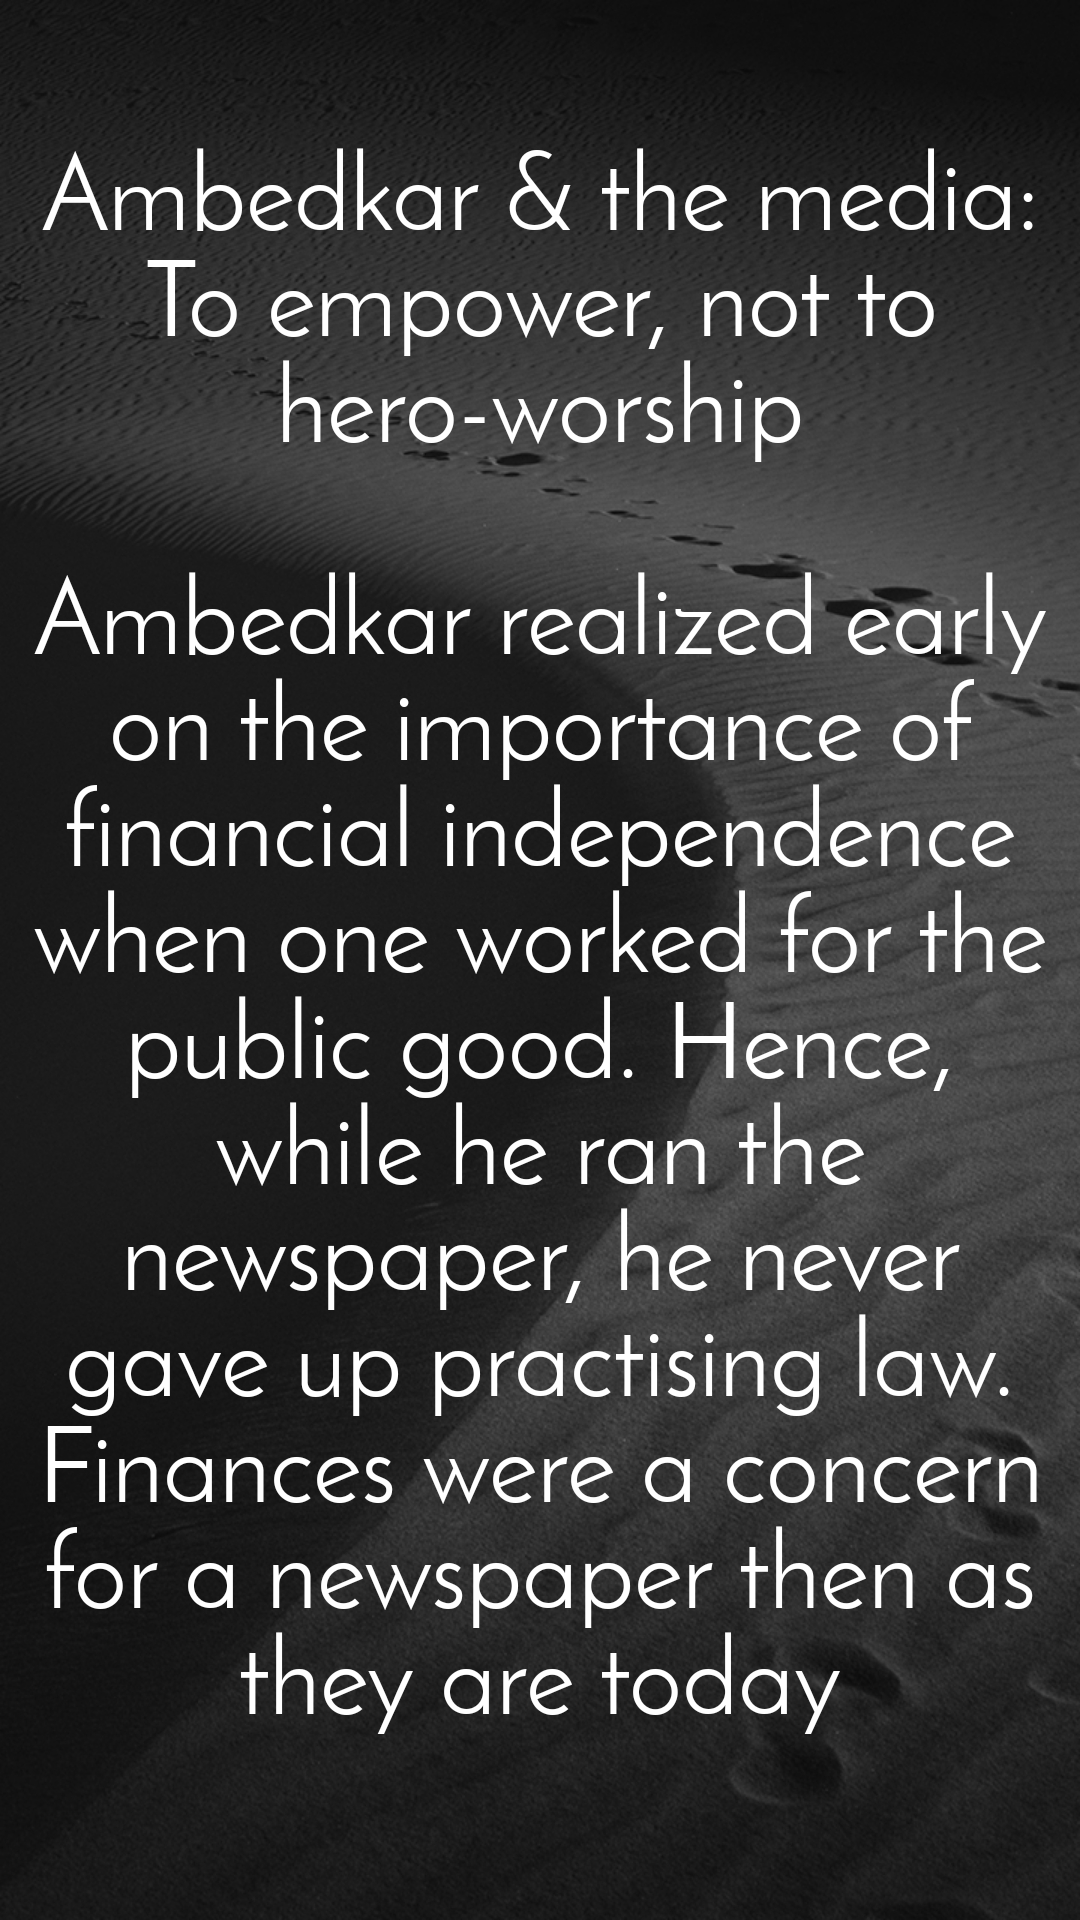 Ambedkar & the media: To empower, not to hero-worship  Ambedkar realized early on the importance of financial independence when one worked for the public good. Hence, while he ran the newspaper, he never gave up practising law. Finances were a concern for a newspaper then as they are today